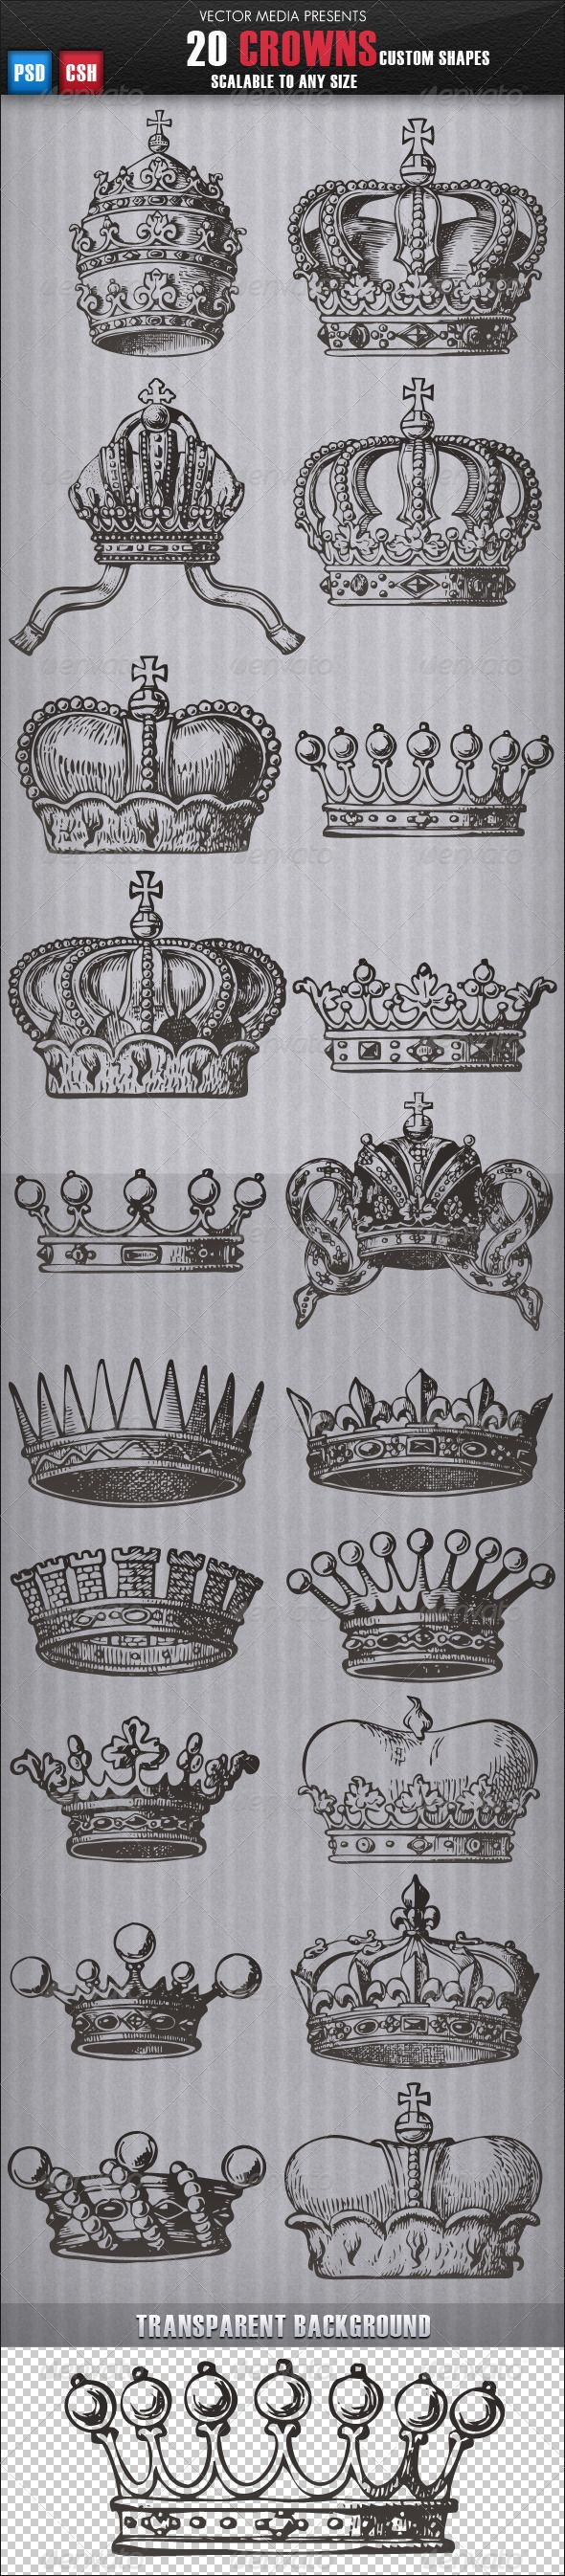 Tattoo Inspiration... Crowns